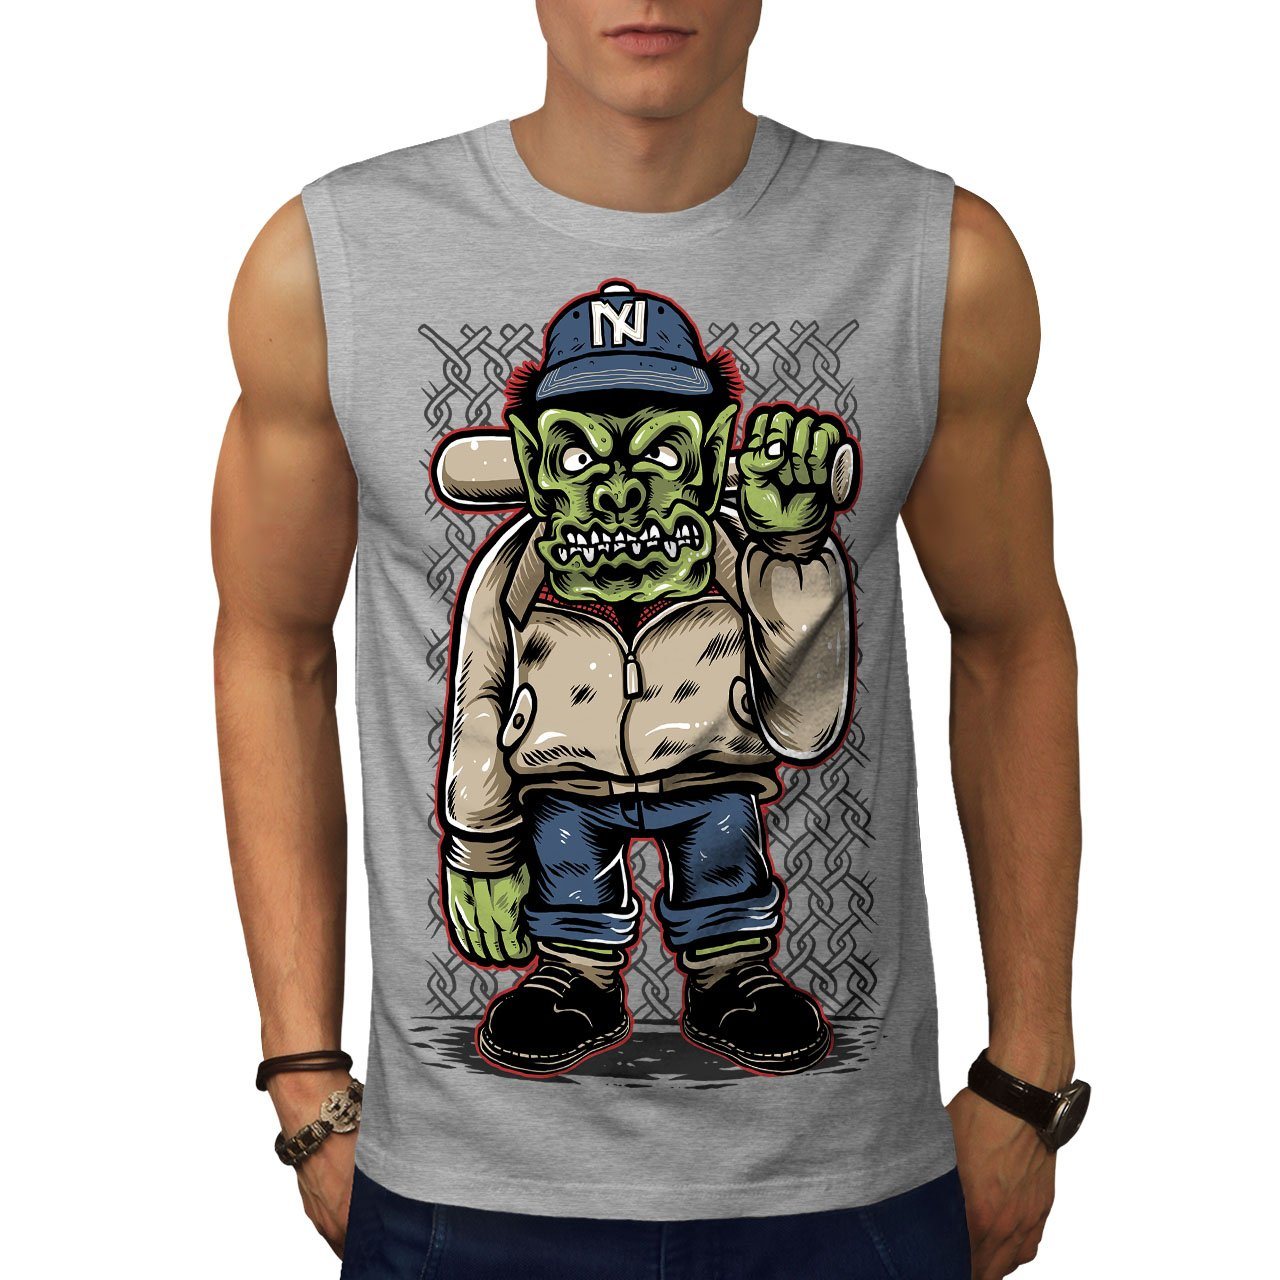 Amazon.com: wellcoda Ogre Criminal Mens Sleevless T-Shirt ...